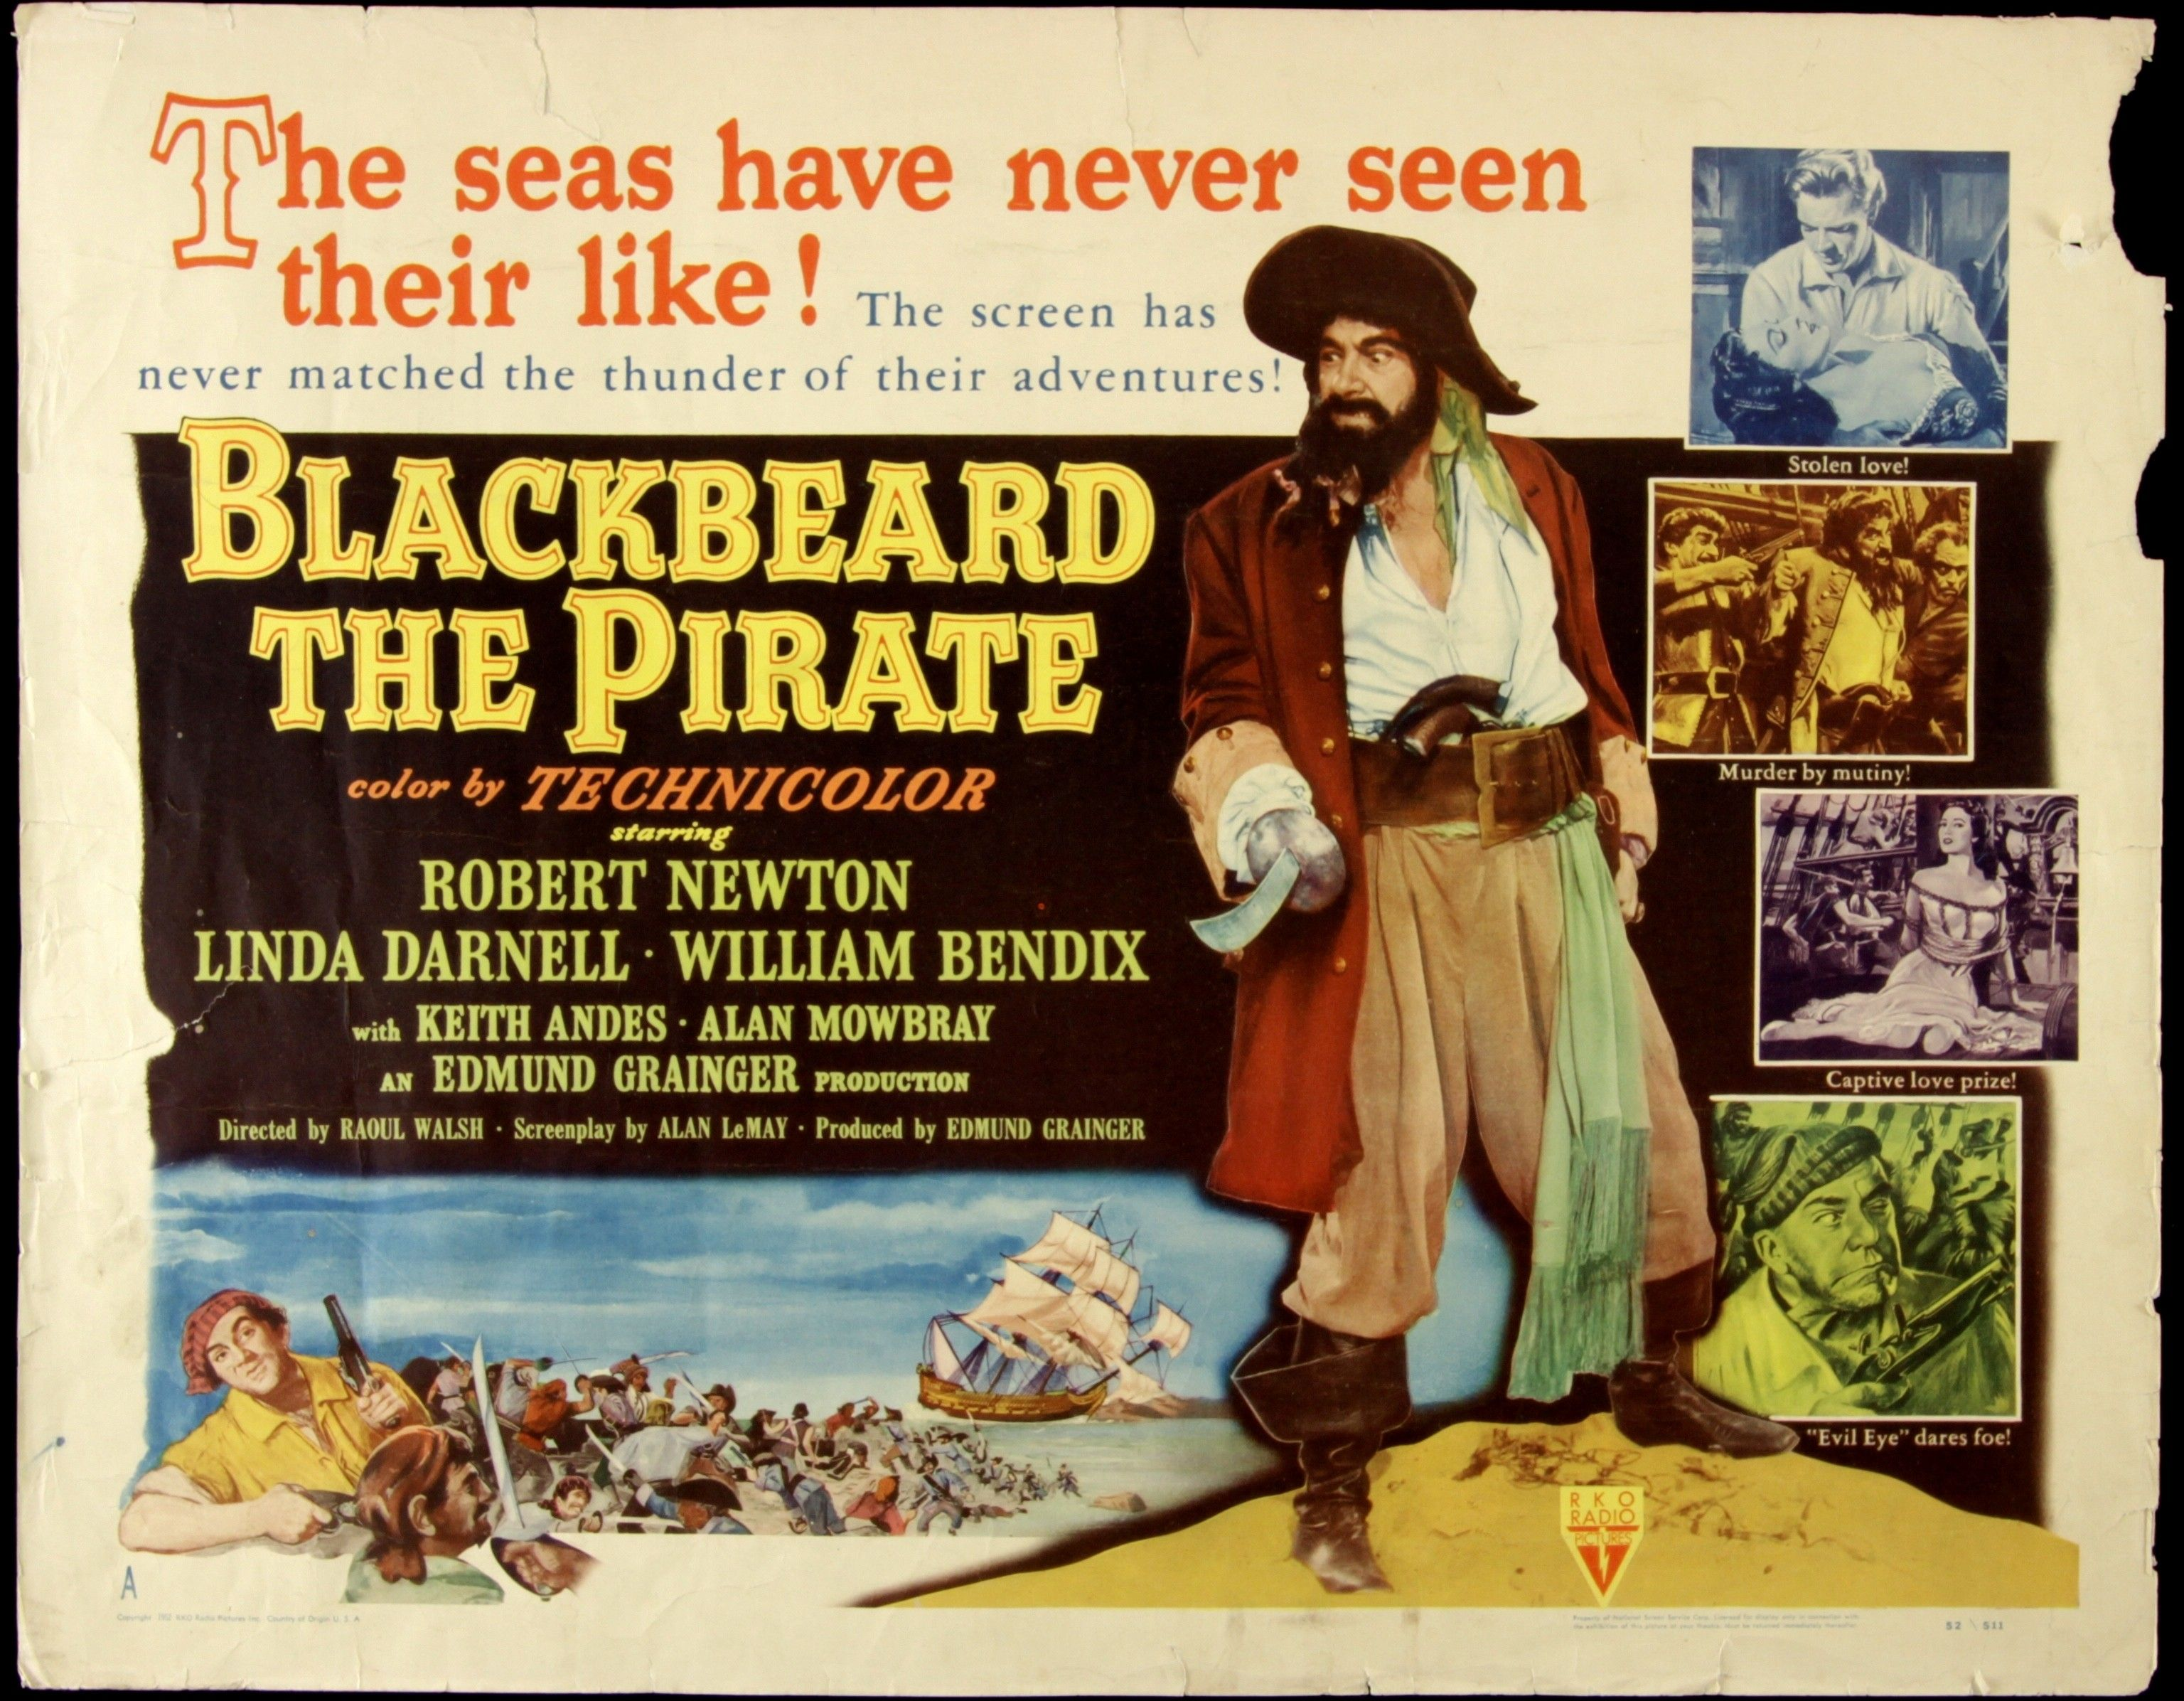 The Pirate Filme Obx Entertainment Blackbeard Pirate Of The Outer Banks